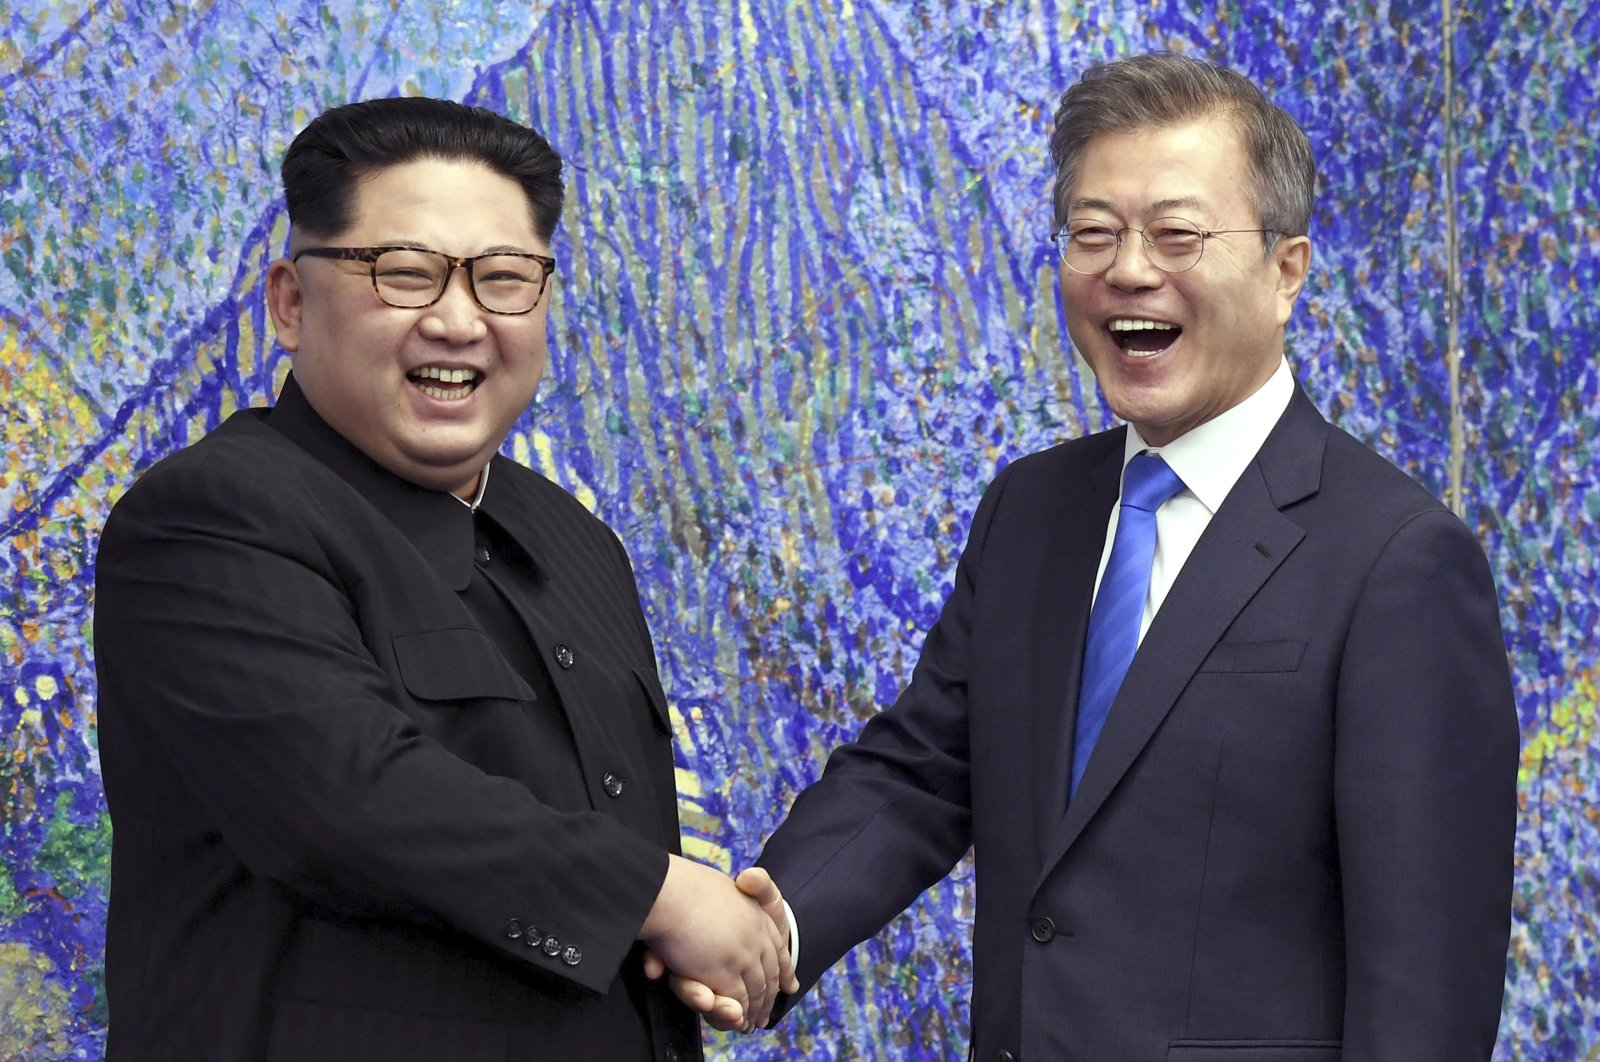 North Korean leader Kim Jong Un (L) poses with South Korean President Moon Jae-in for a photo inside the Peace House at the border village of Panmunjom in Demilitarized Zone, South Korea, April 27, 2018. (AP Photo)